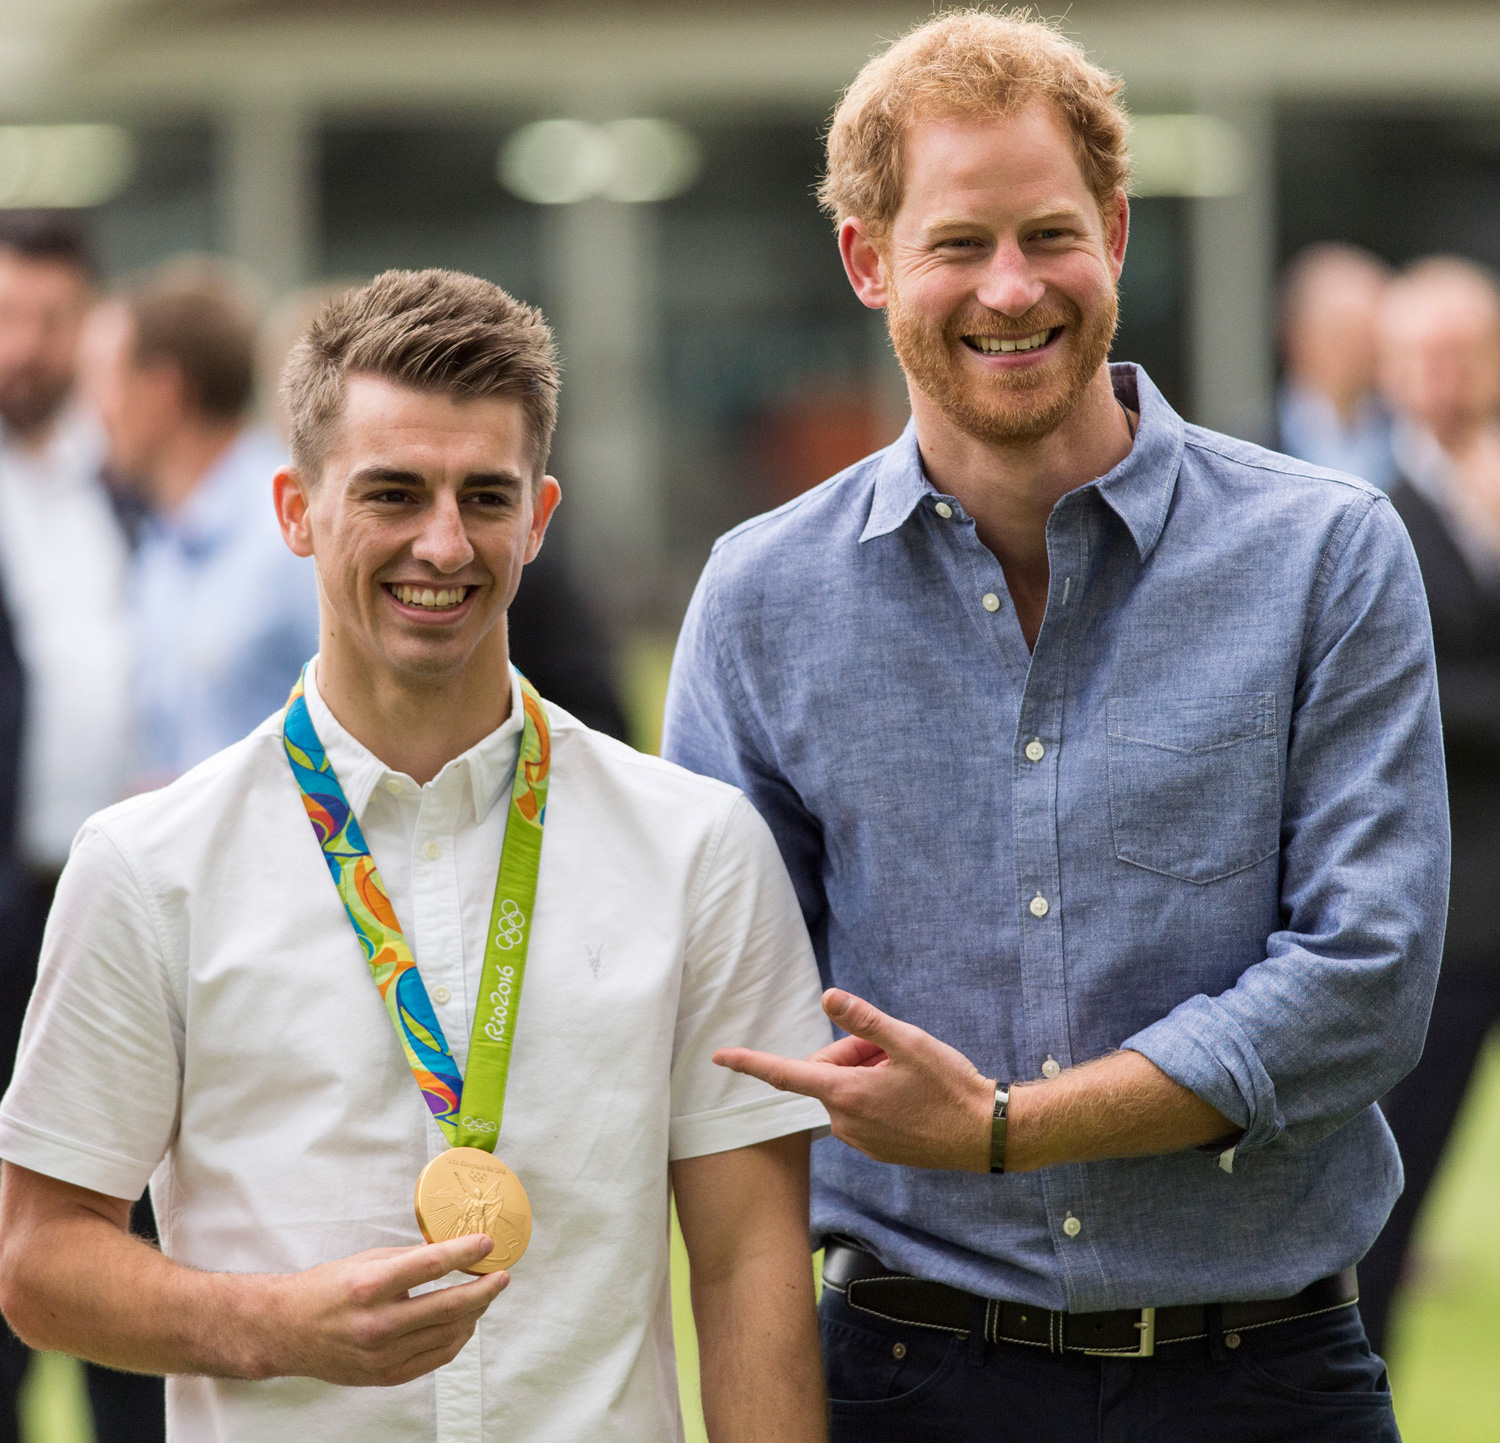 LONDON, ENGLAND - OCTOBER 07: Prince Harry meets Olympic Gymnast Max Whitlock during a visit to celebrate the expansion of Coach Core at Lord's Cricket Ground on October 7, 2016 in London, England. (Photo by Mark Cuthbert/UK Press via Getty Images)